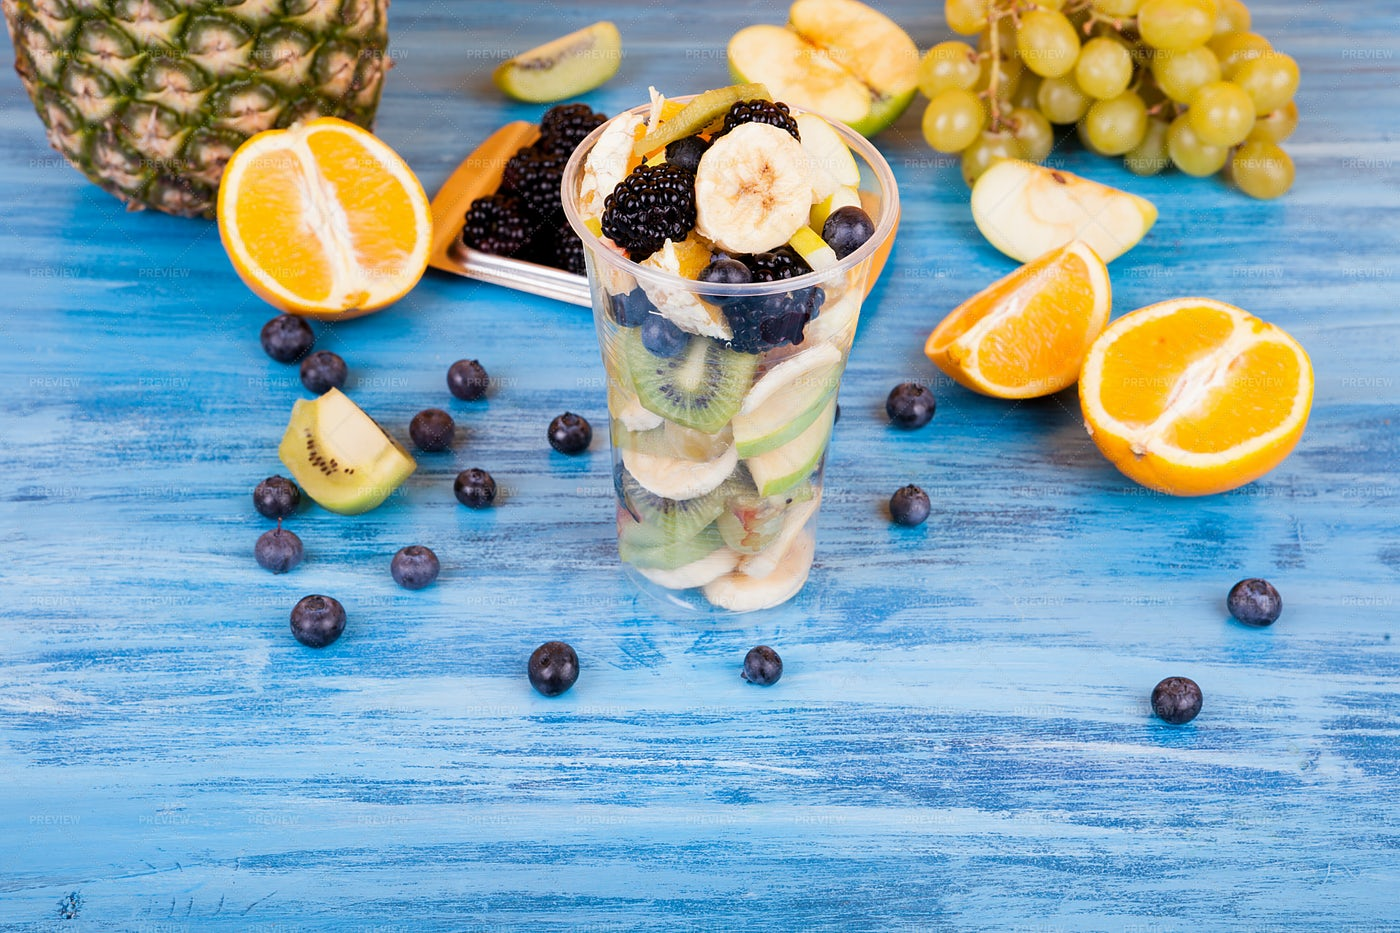 Cup With Exotic Fruits: Stock Photos